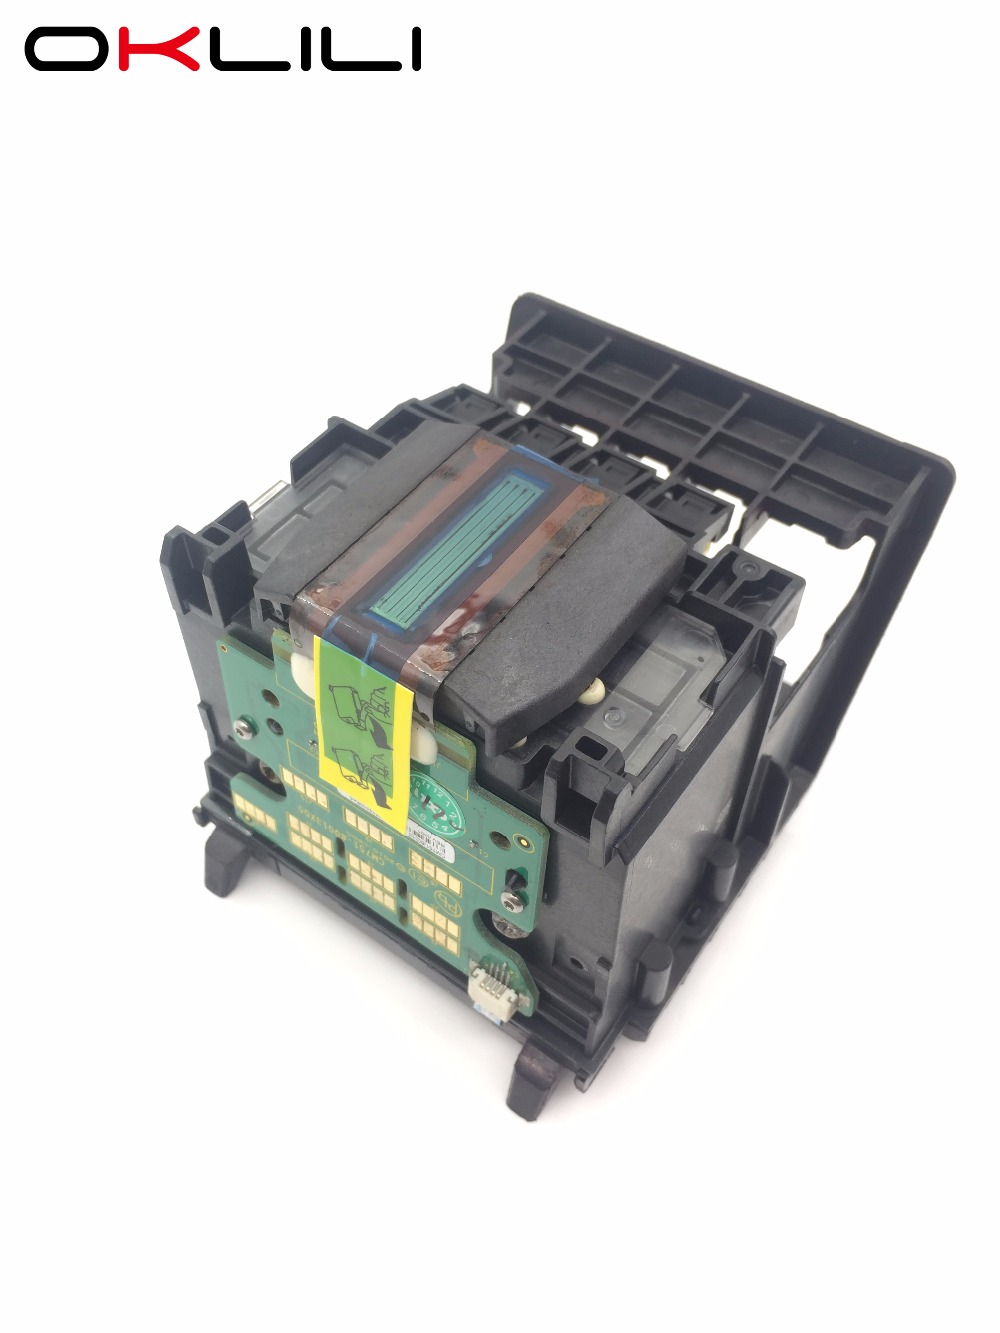 ORIGINAL CM751-80013A 950 951 950XL 951XL Printhead Print head for HP Pro 8100 8600 8610 8620 8625 8630 8700 251DW 251 276 276DW 950 printhead for hp950 print head for hp officejet pro 8100 8600 8610 8620 8630 8640 8660 8615 8625 251dw 276dw printer